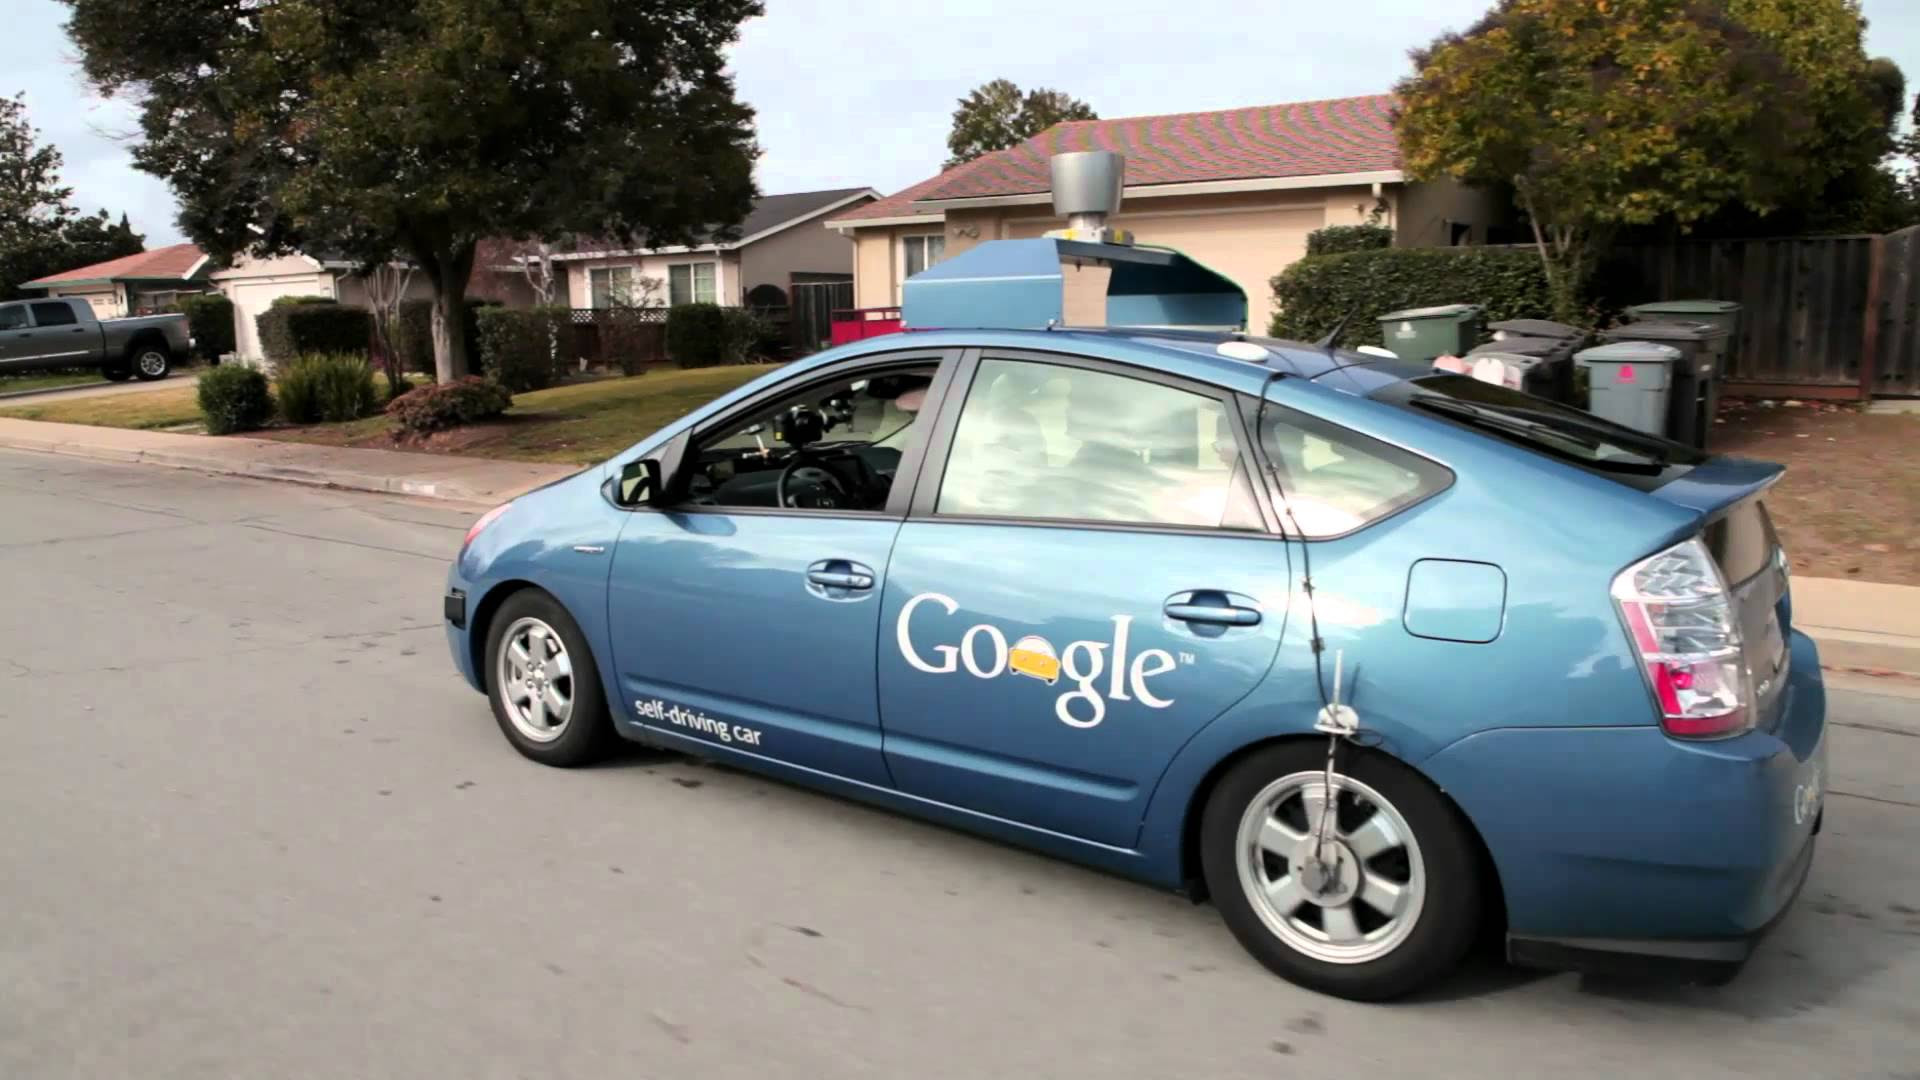 driverless-cars-taxi